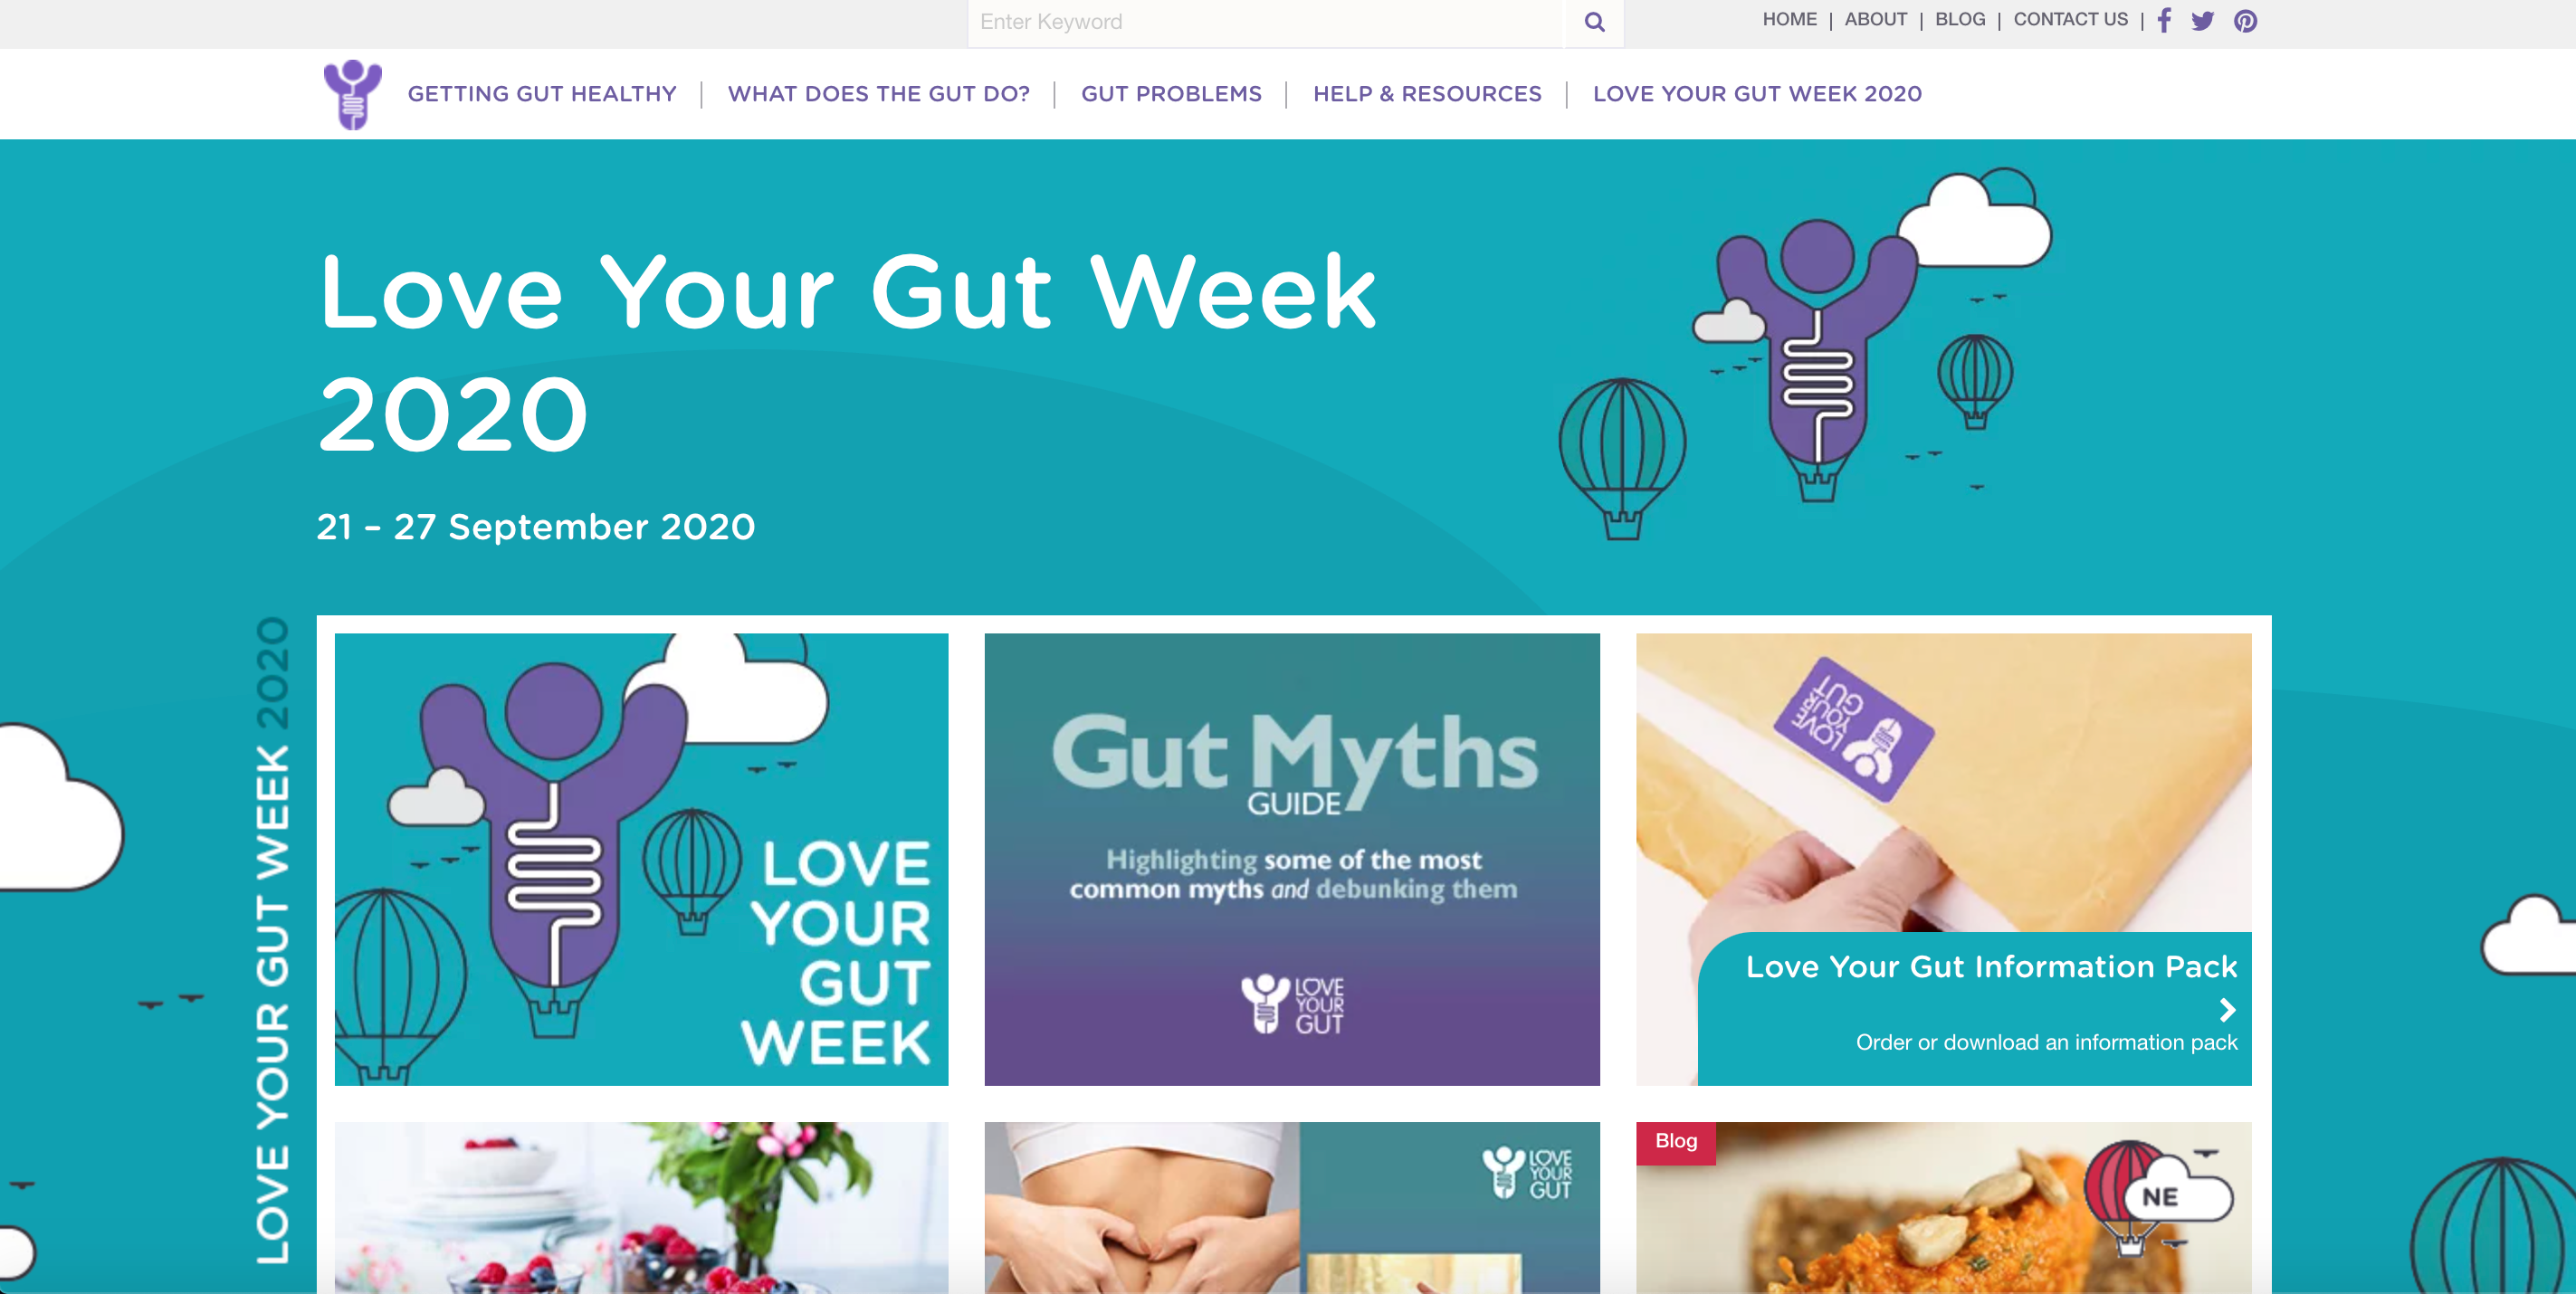 Image of the Love Your Gut Webpage